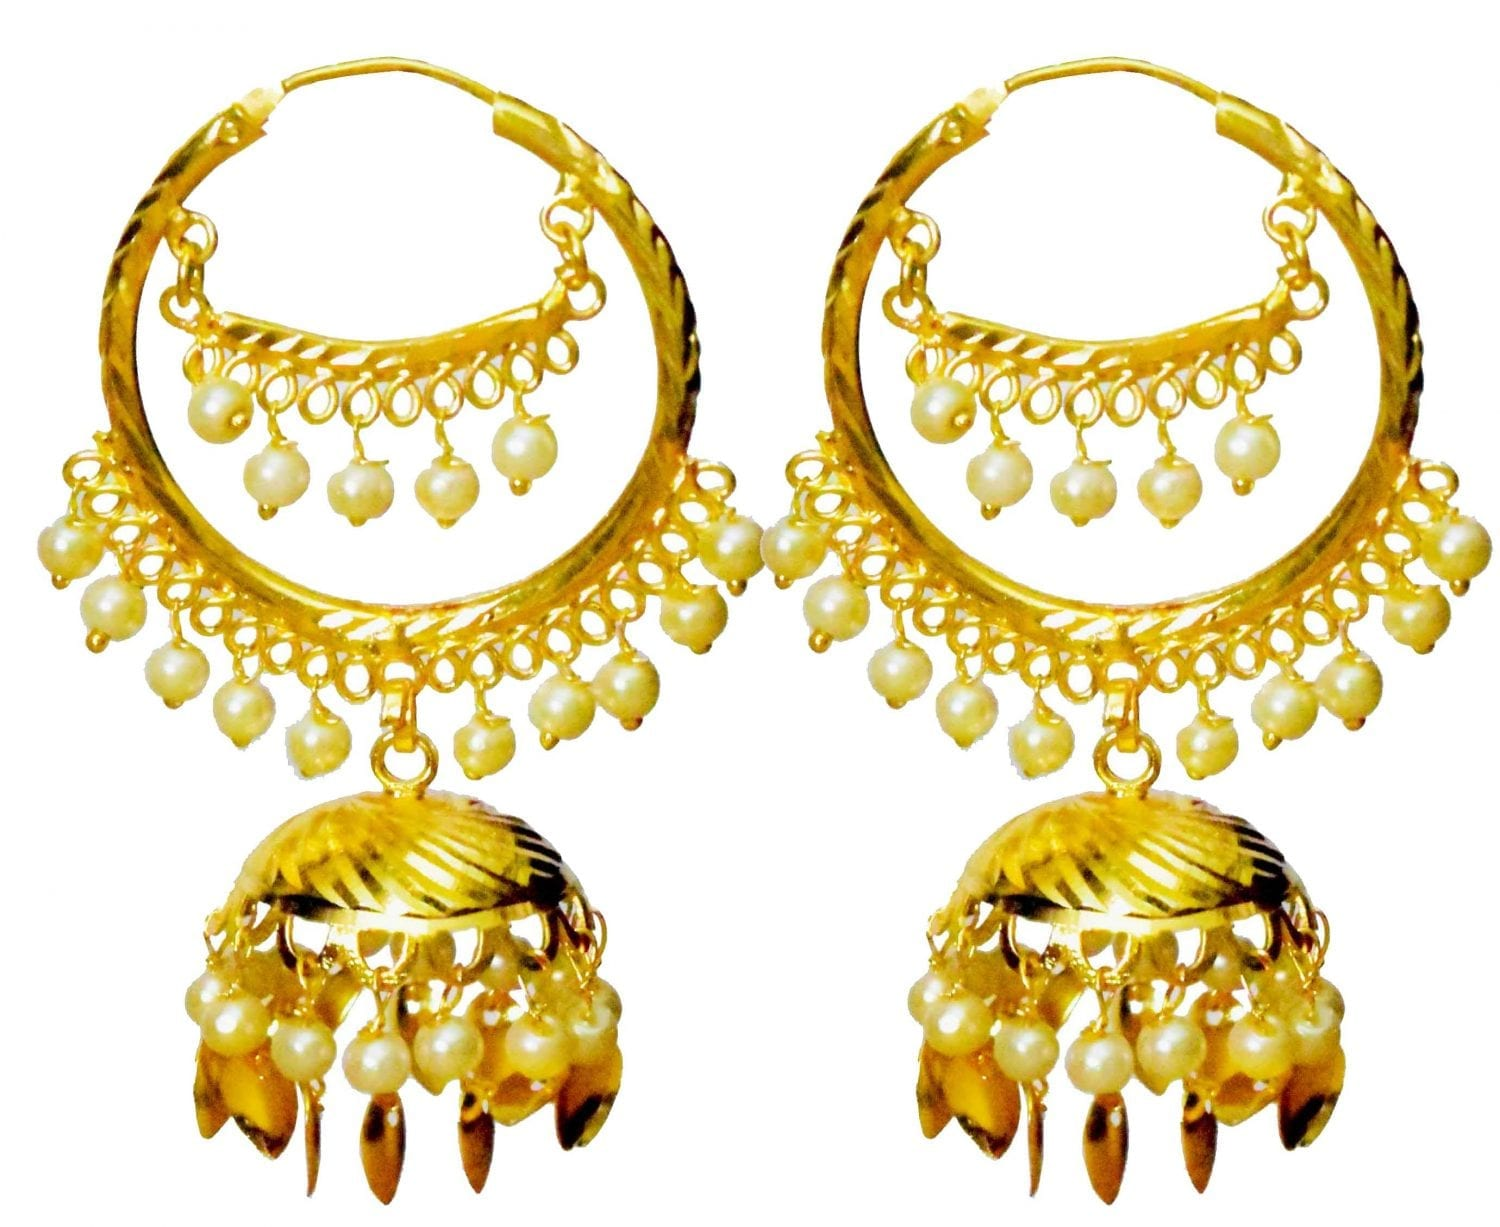 Bali Set Gold Polished Traditional Punjabi Earrings J0462 1